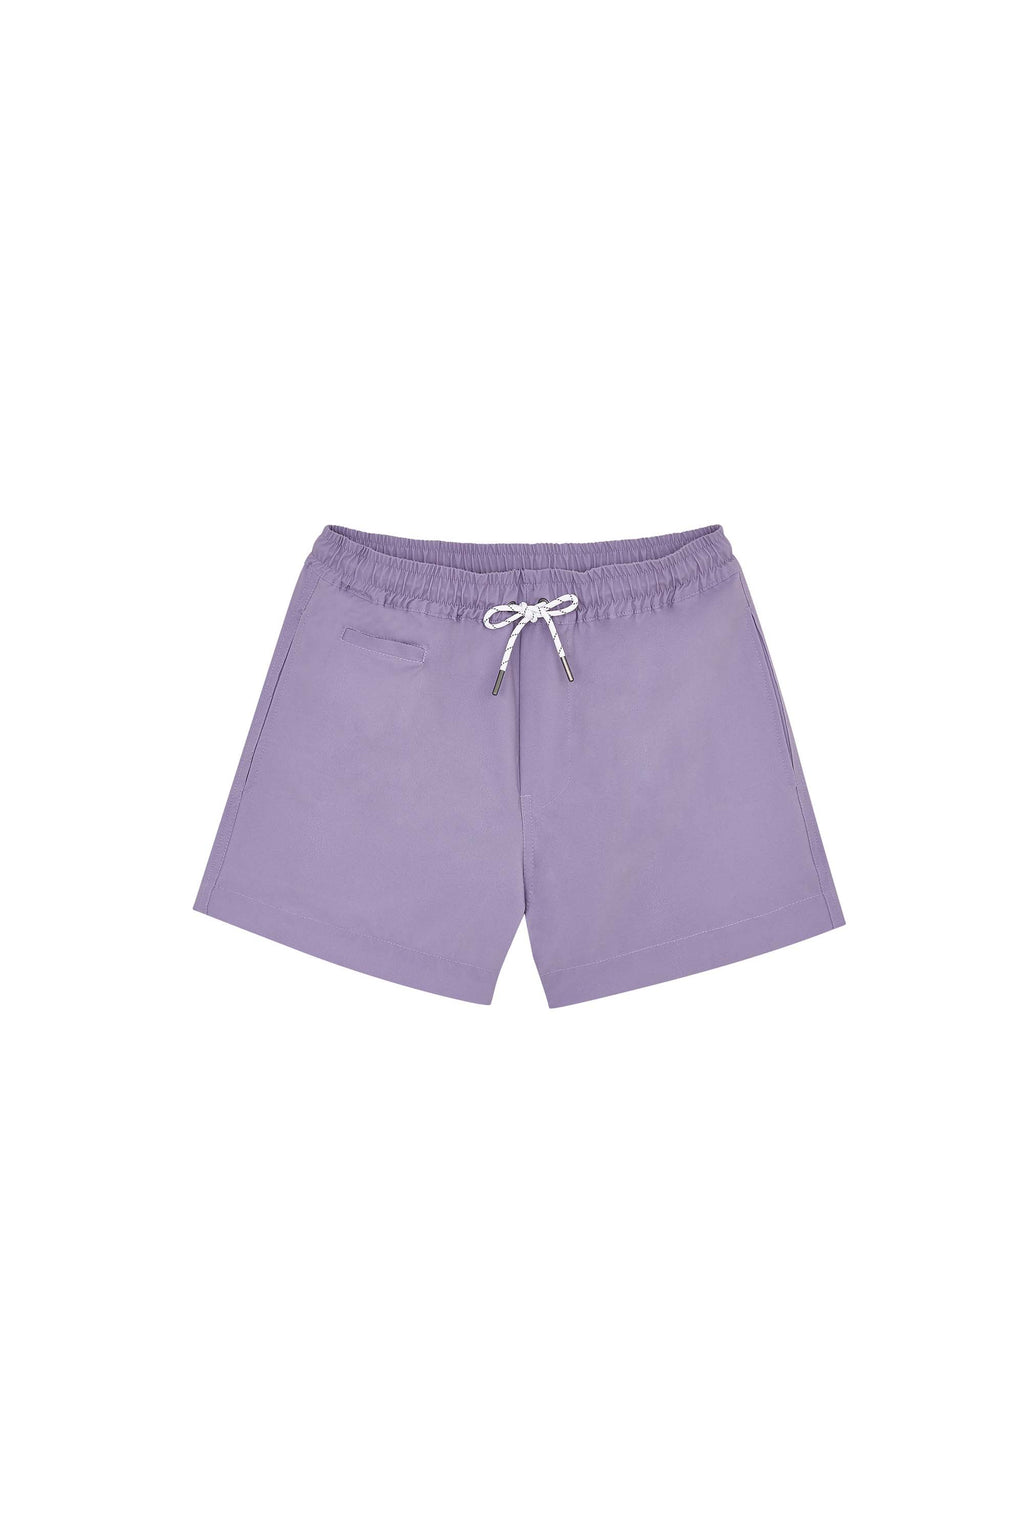 Tato Swim Short - Dusty Lavender